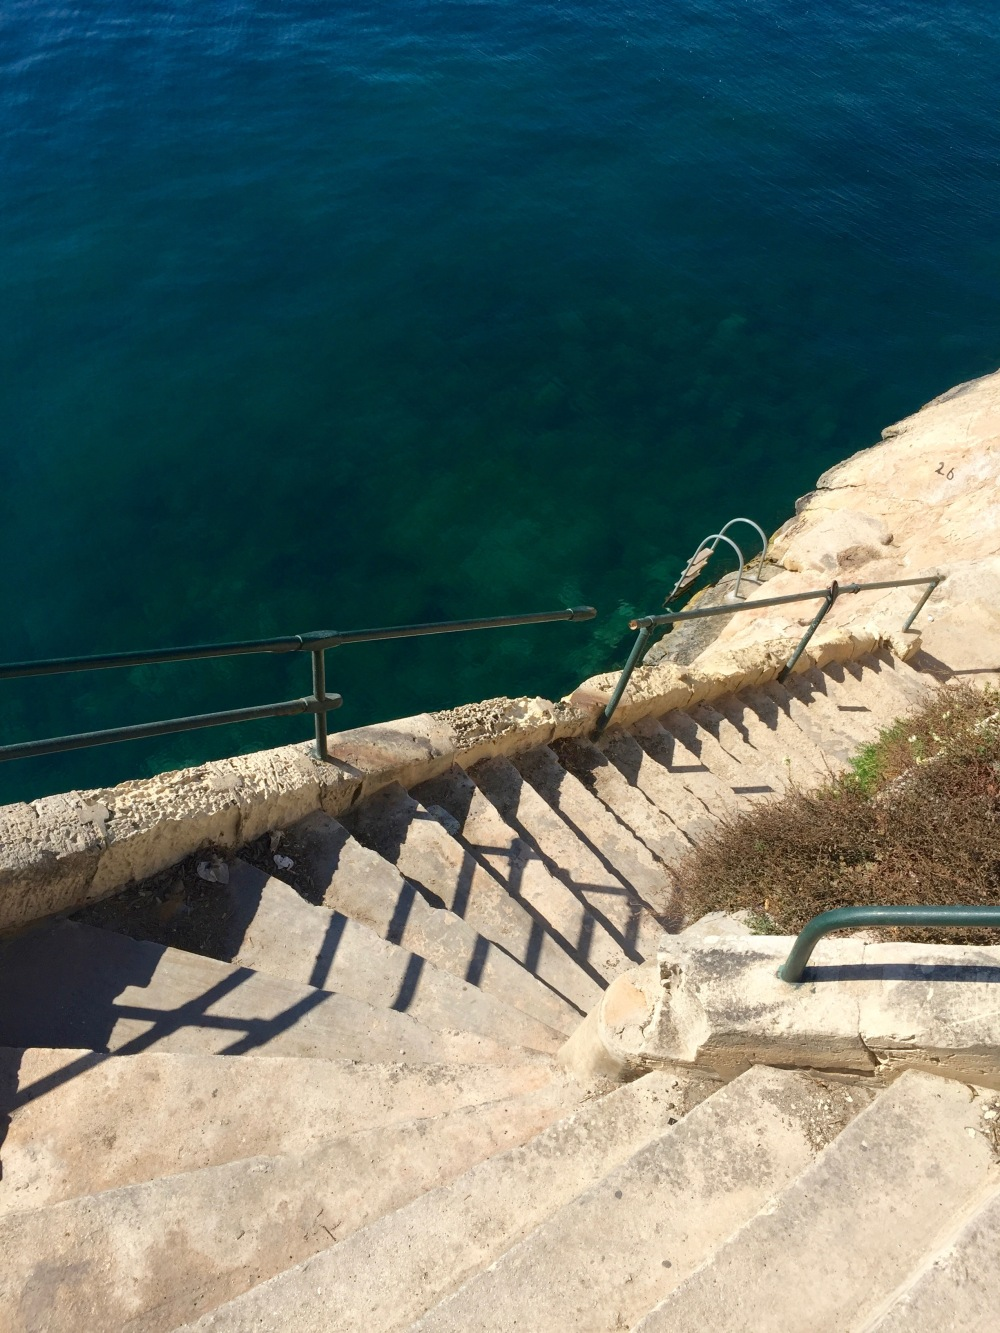 Winding stairways that lead into the sea? You're trying to kill me.